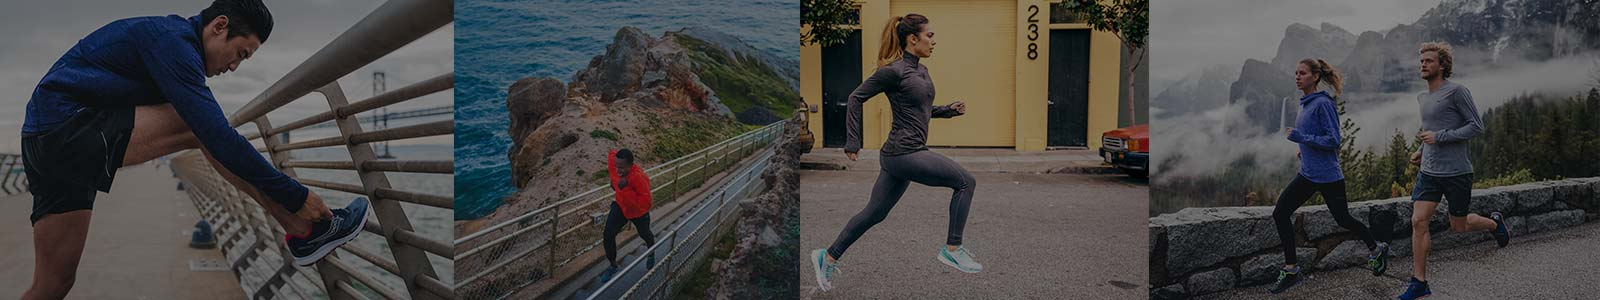 Saucony - Resolve to Run Sweepstakes